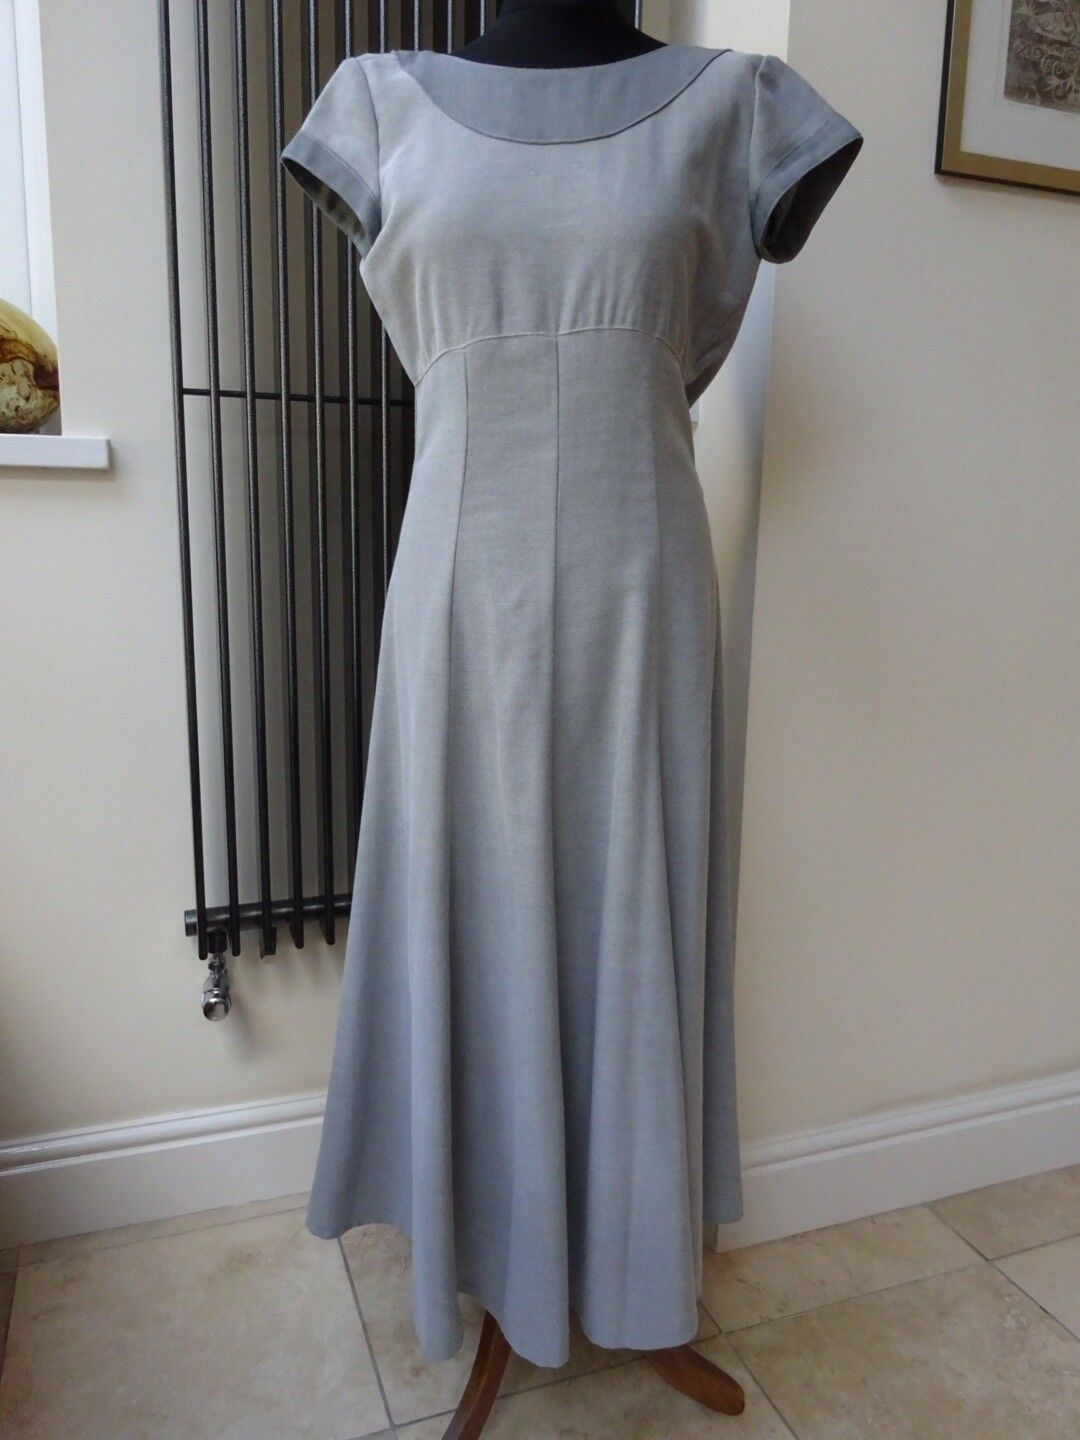 Vintage Long Grey Dress Evening Wedding Size 10 Excellent Condition